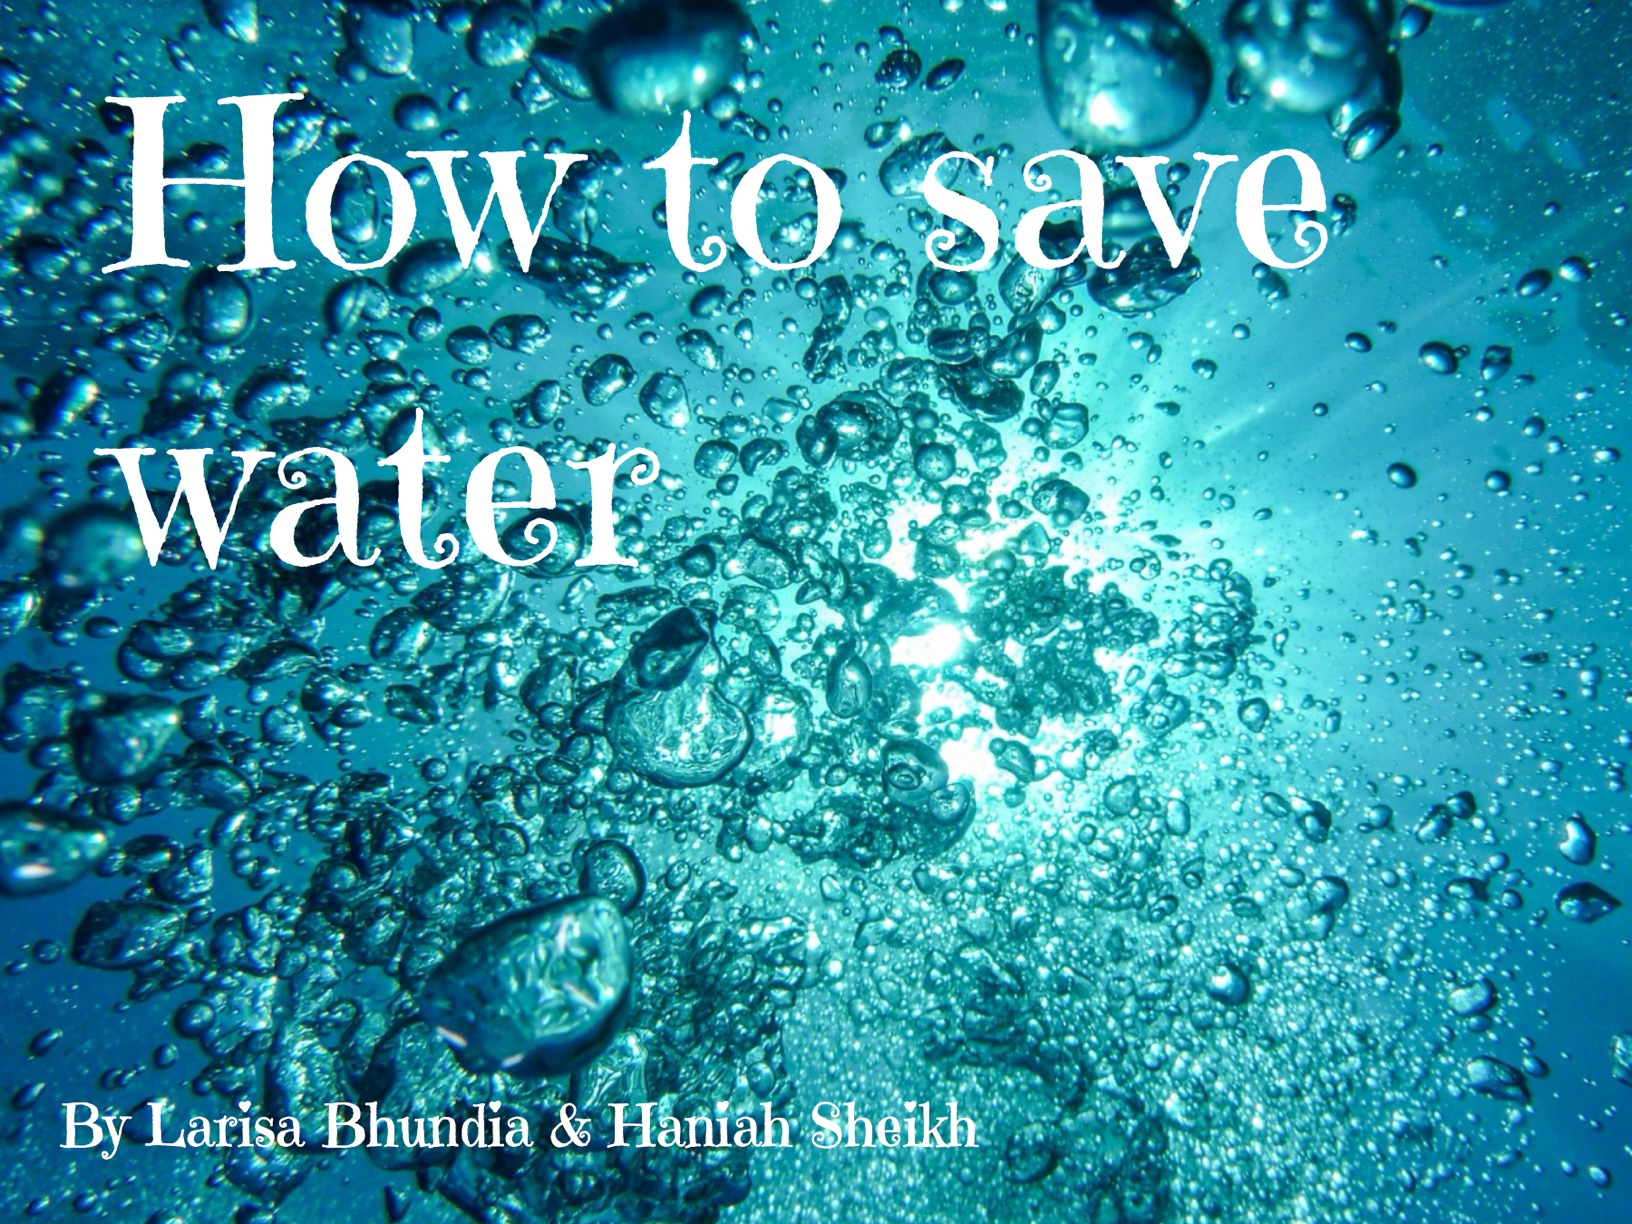 How to save water